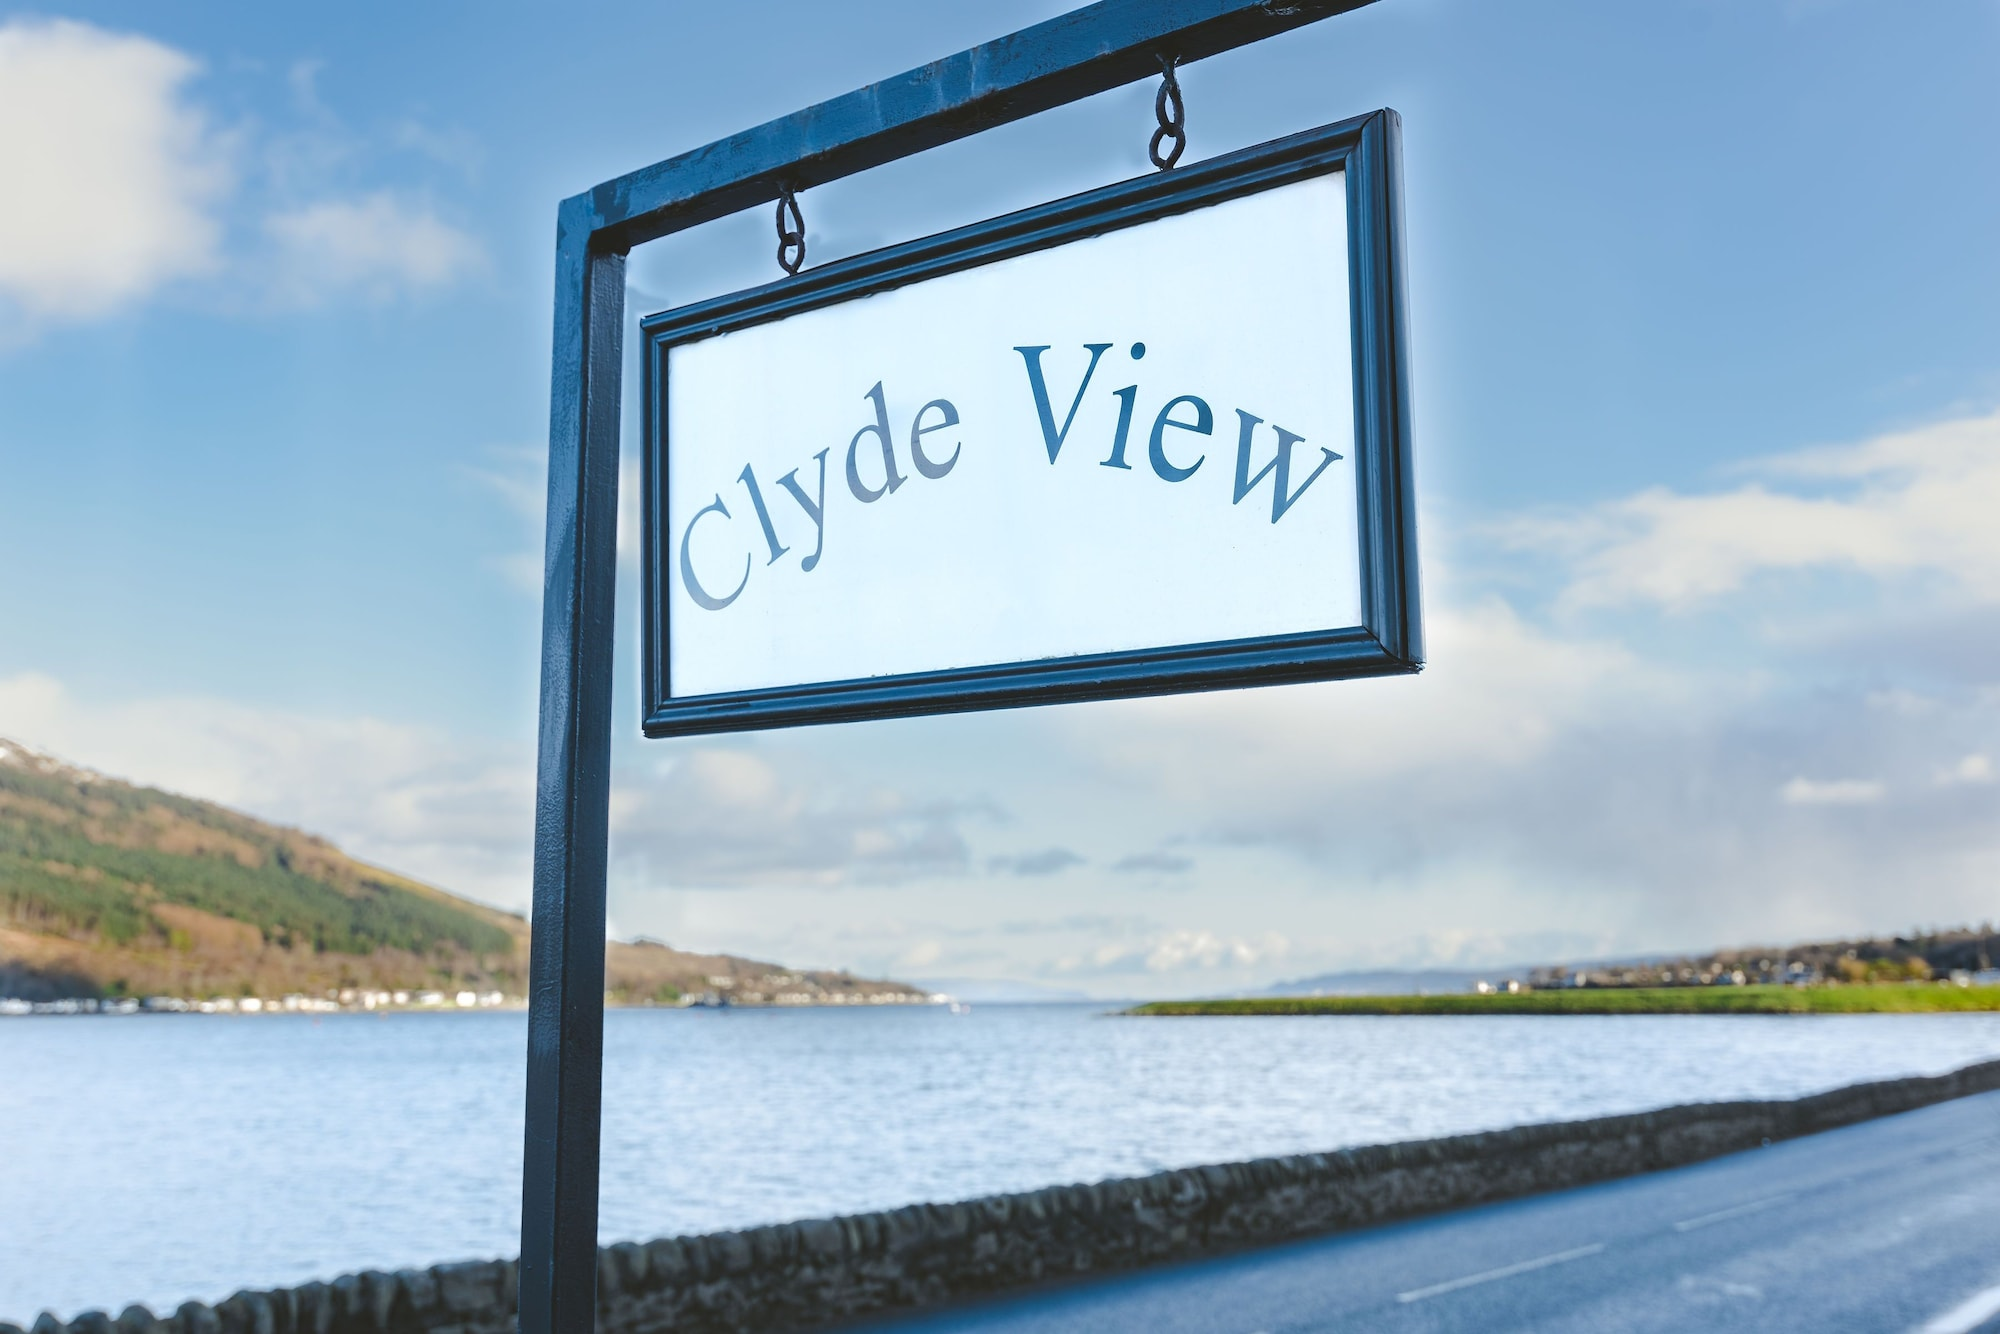 Clyde View Bed & Breakfast, Argyll and Bute